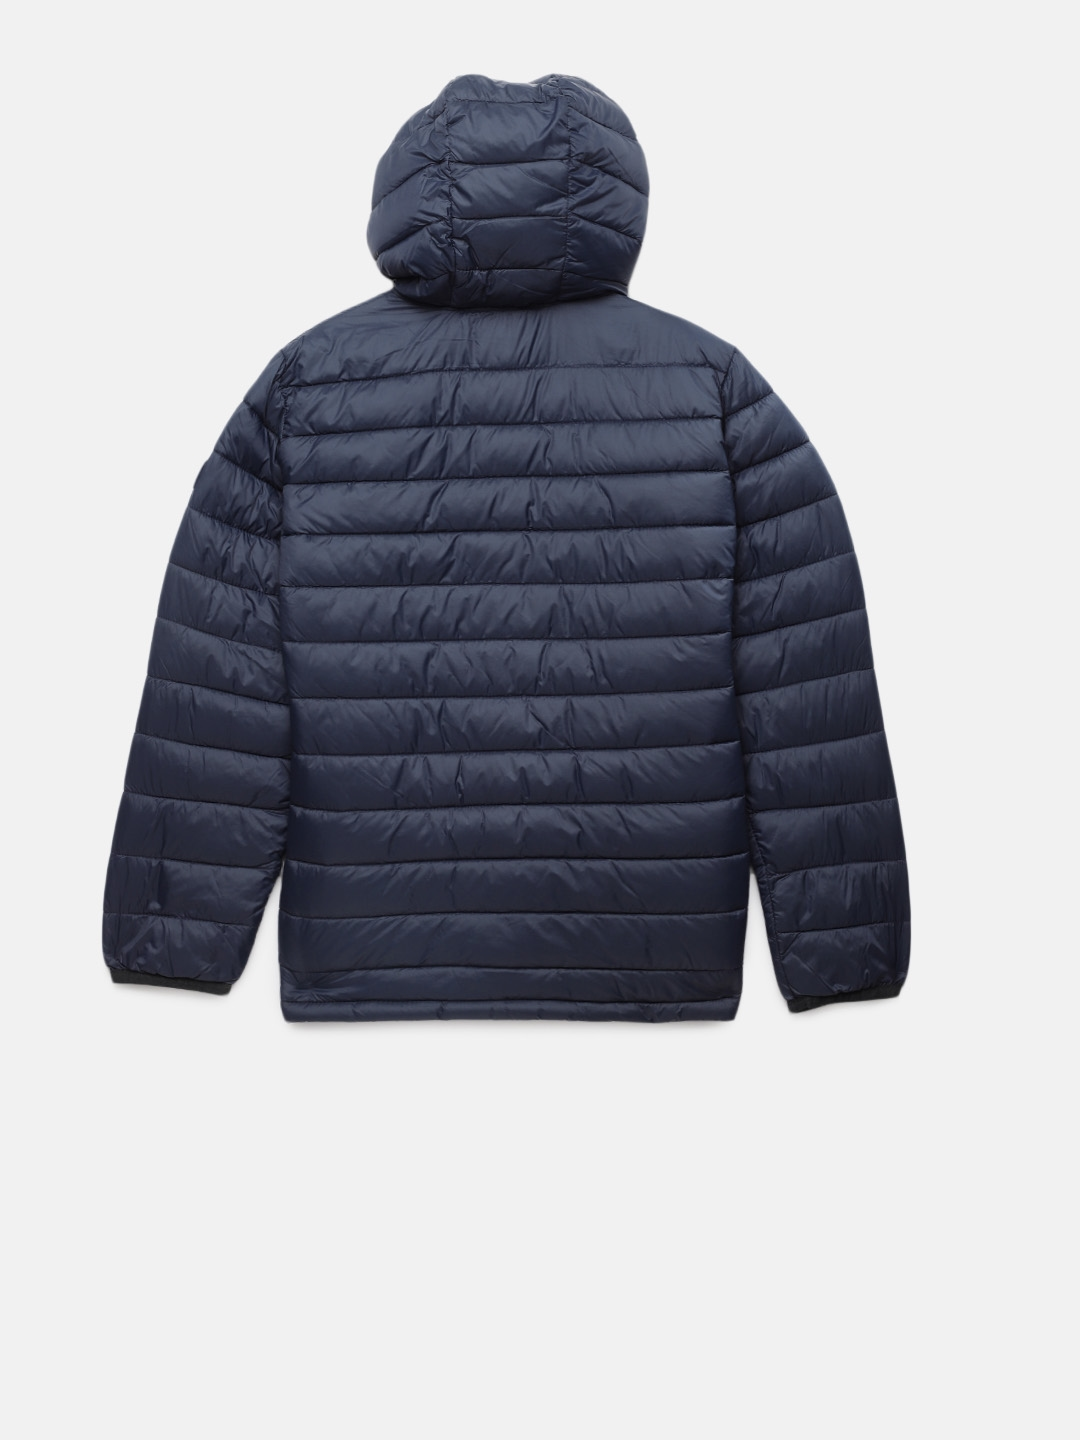 71c57e3c7 Buy GAP Boys  Navy Blue Solid ColdControl Lite Puffer Jacket ...